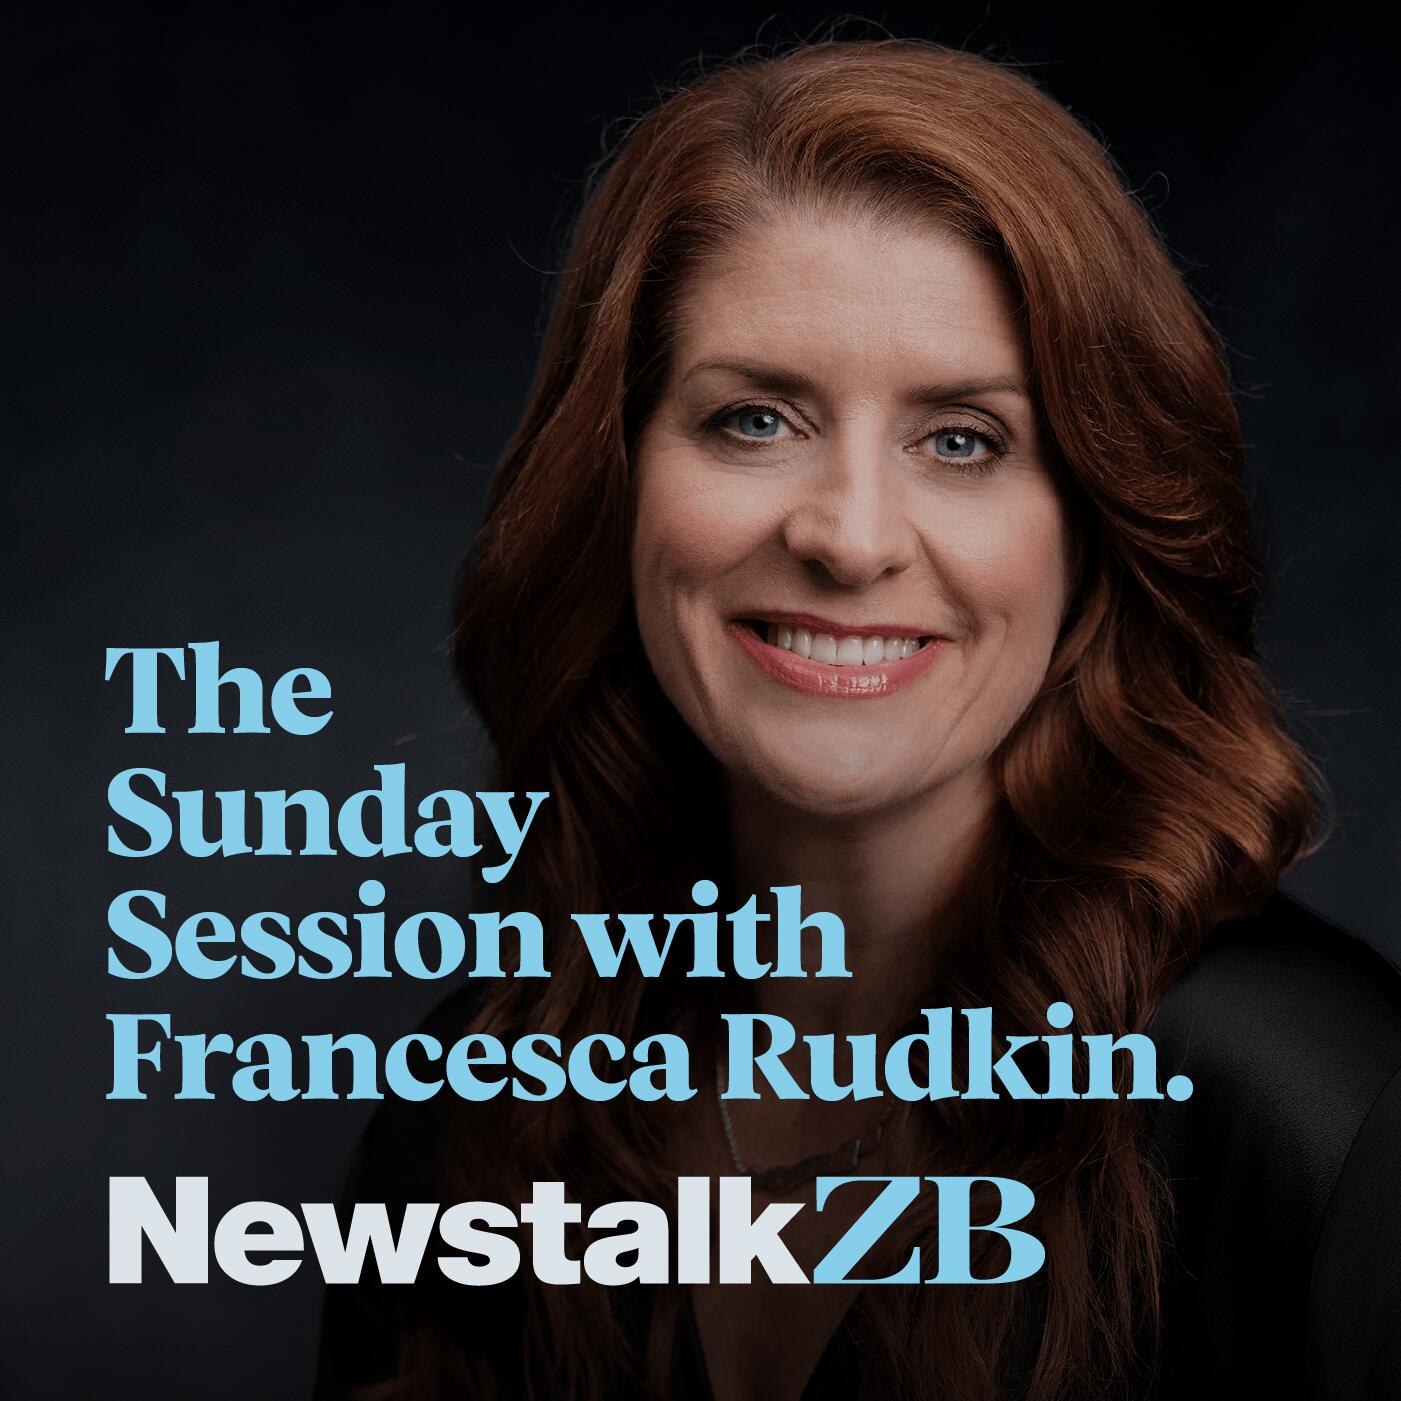 The Sunday Session with Francesca Rudkin